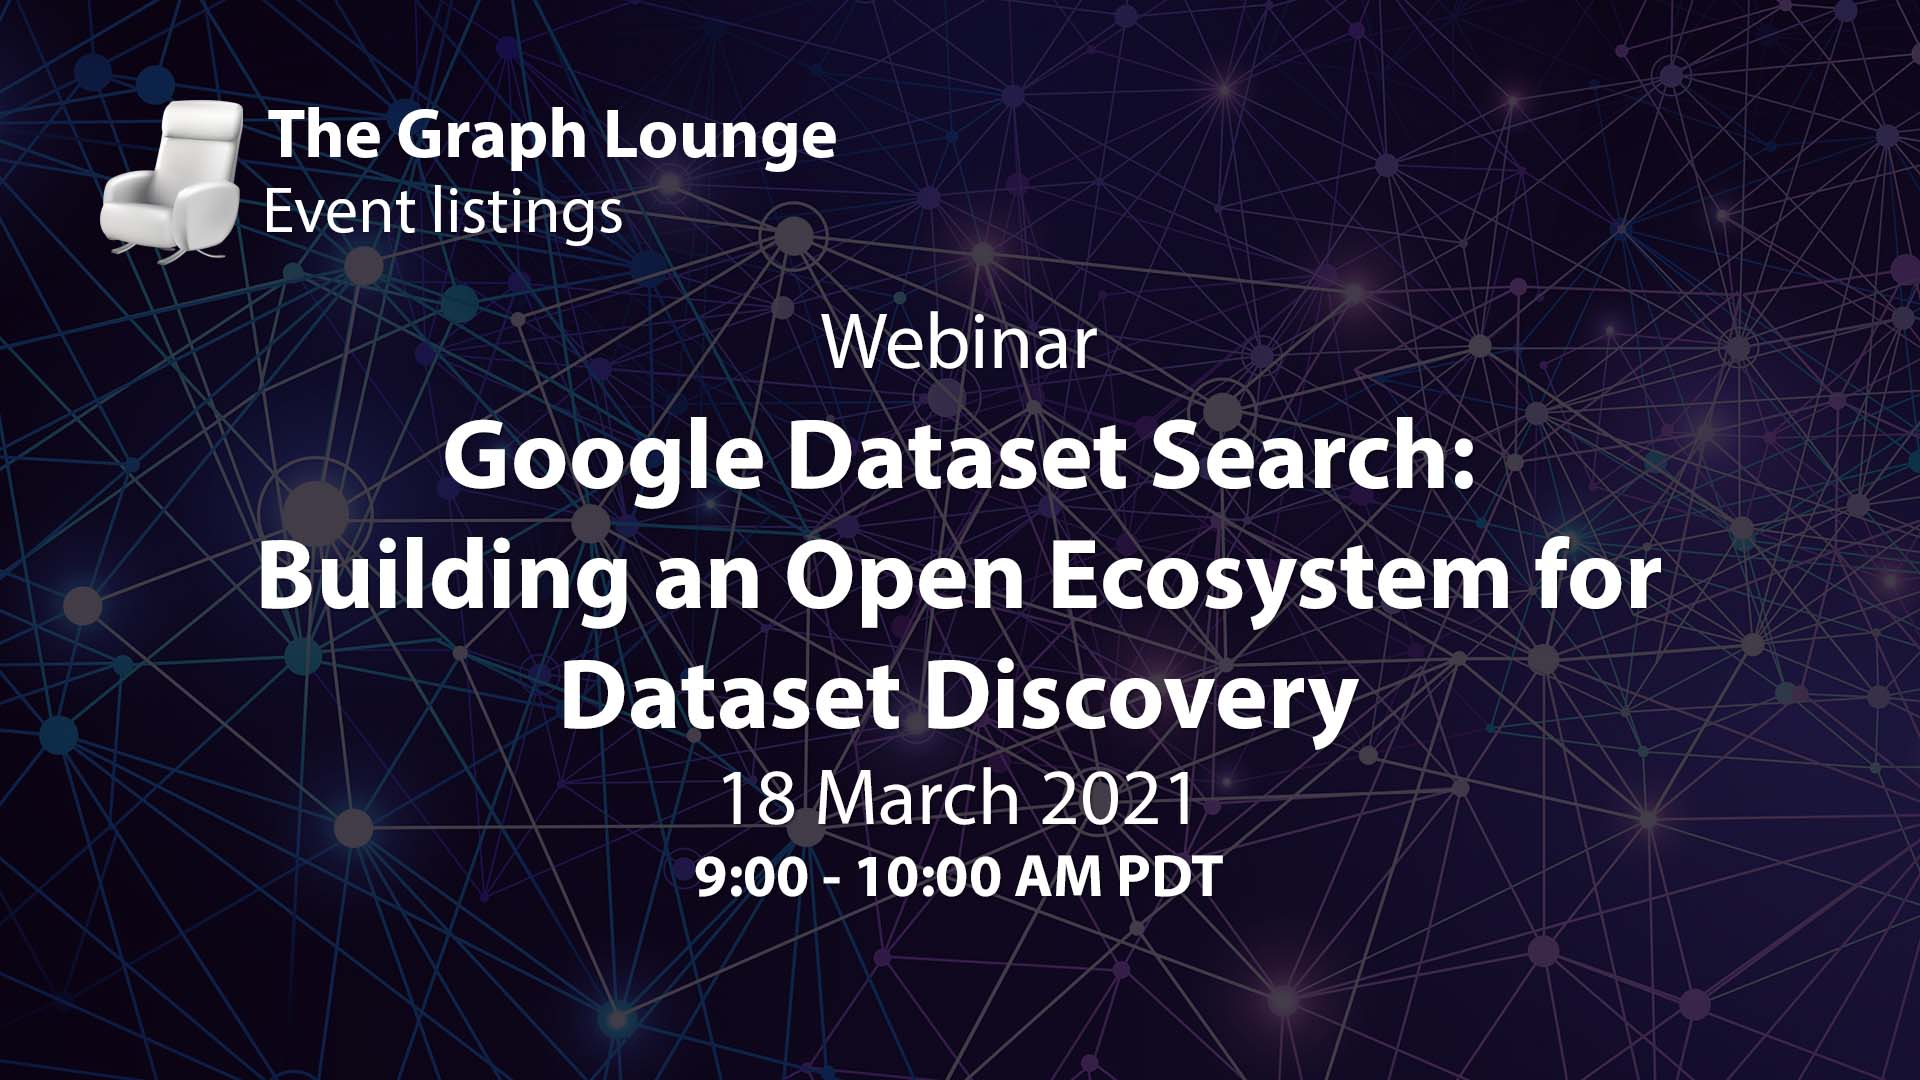 Google Dataset Search: Building an Open Ecosystem for Dataset Discovery